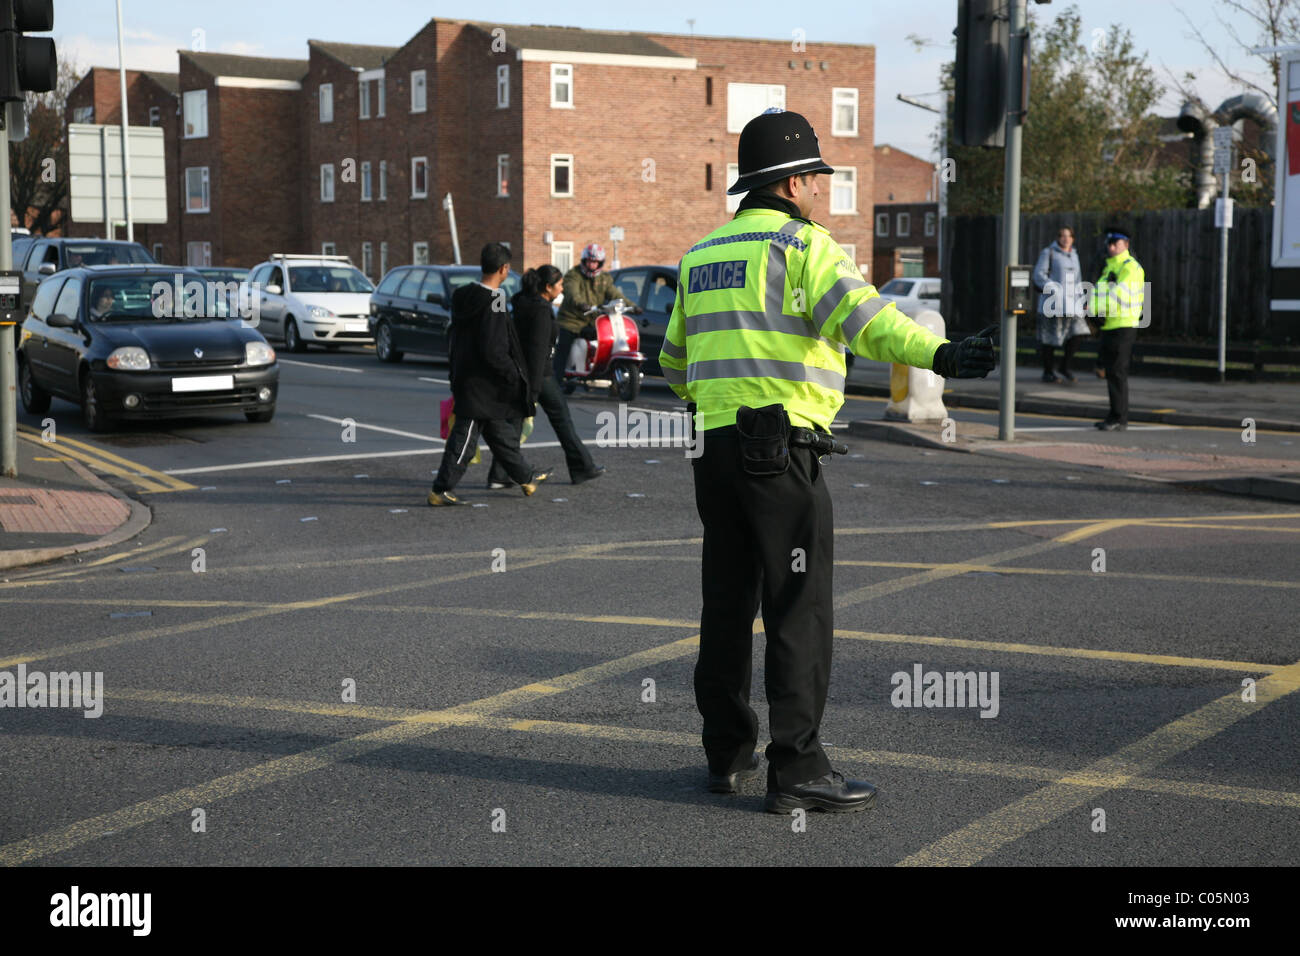 leicestershire police close road and direct traffic - Stock Image